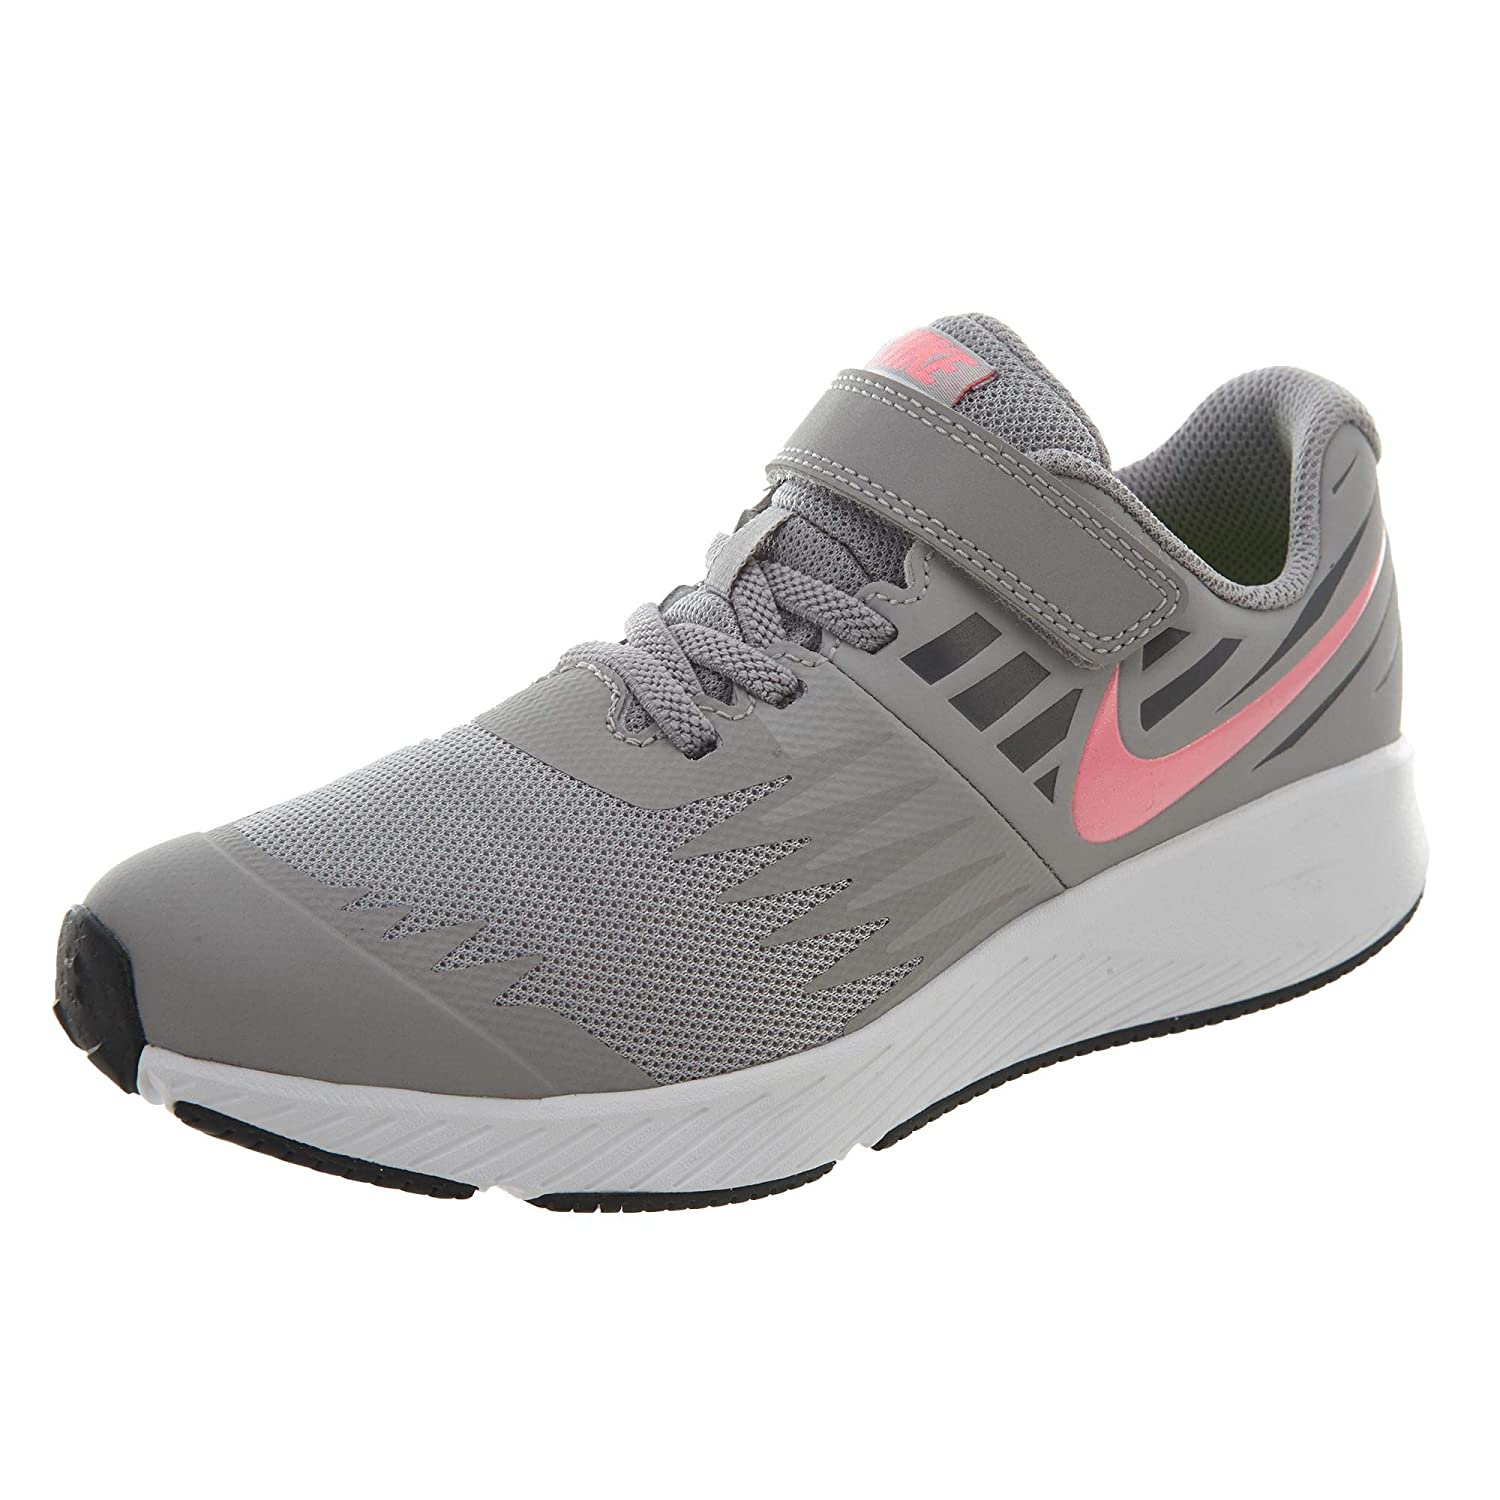 NIKE Star Runner (PSV), Chaussures de Fitness Fille 002) 31 EU|Multicolore (Atmosphere Grey/Suns 002) Fille 5aafed